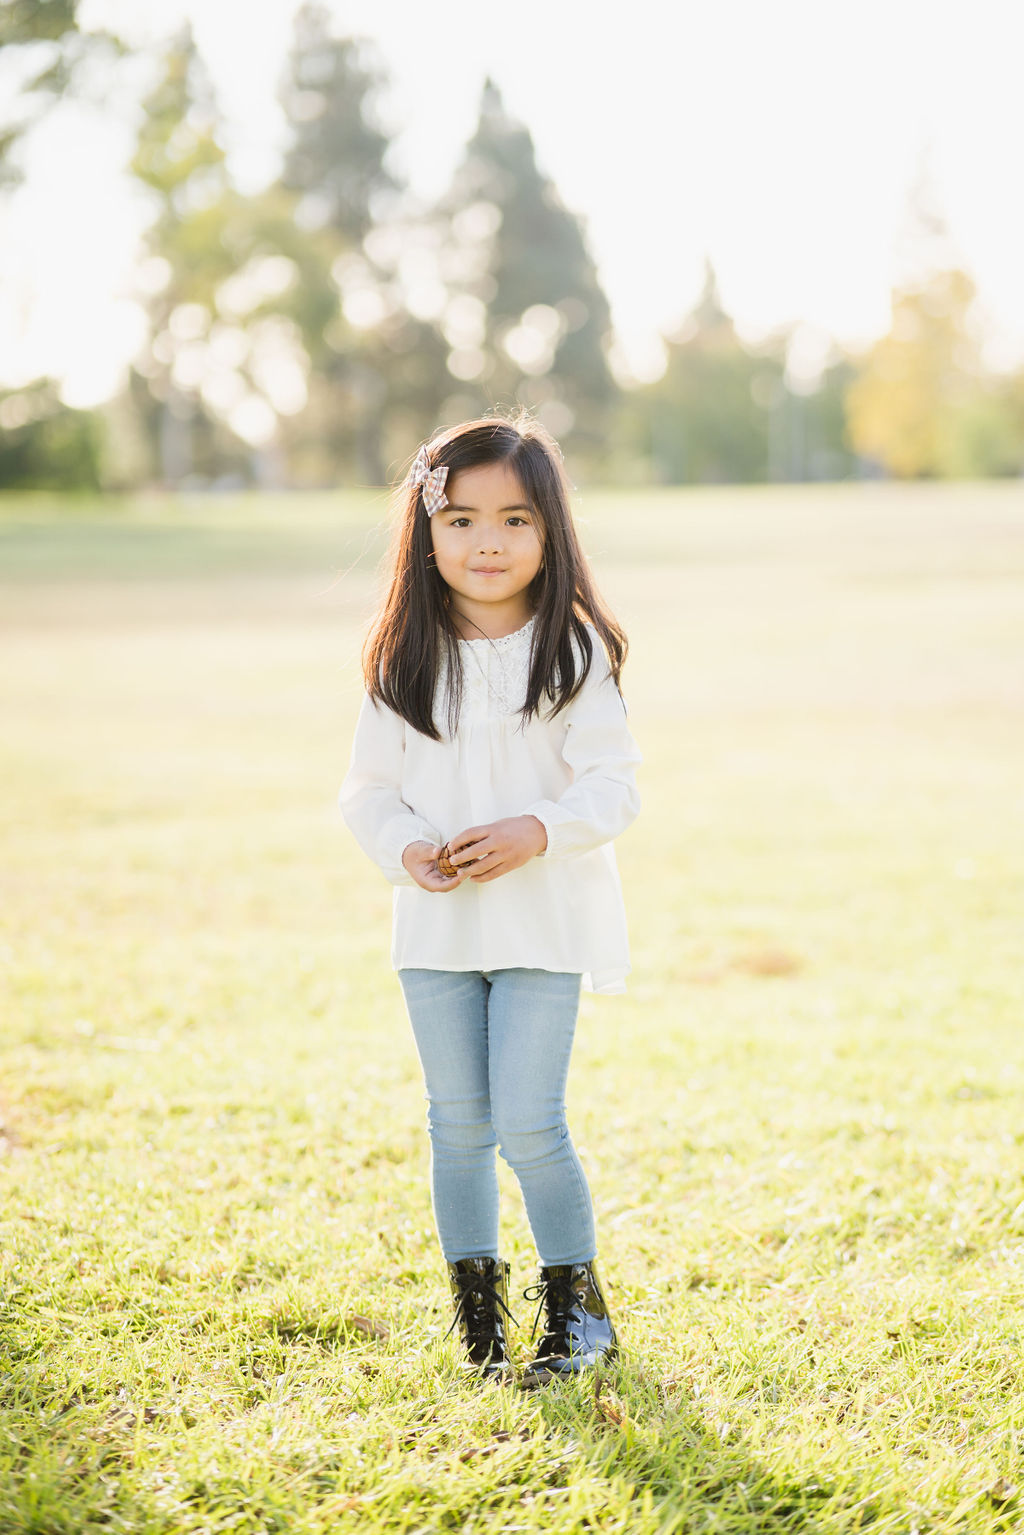 young girl on grassy field